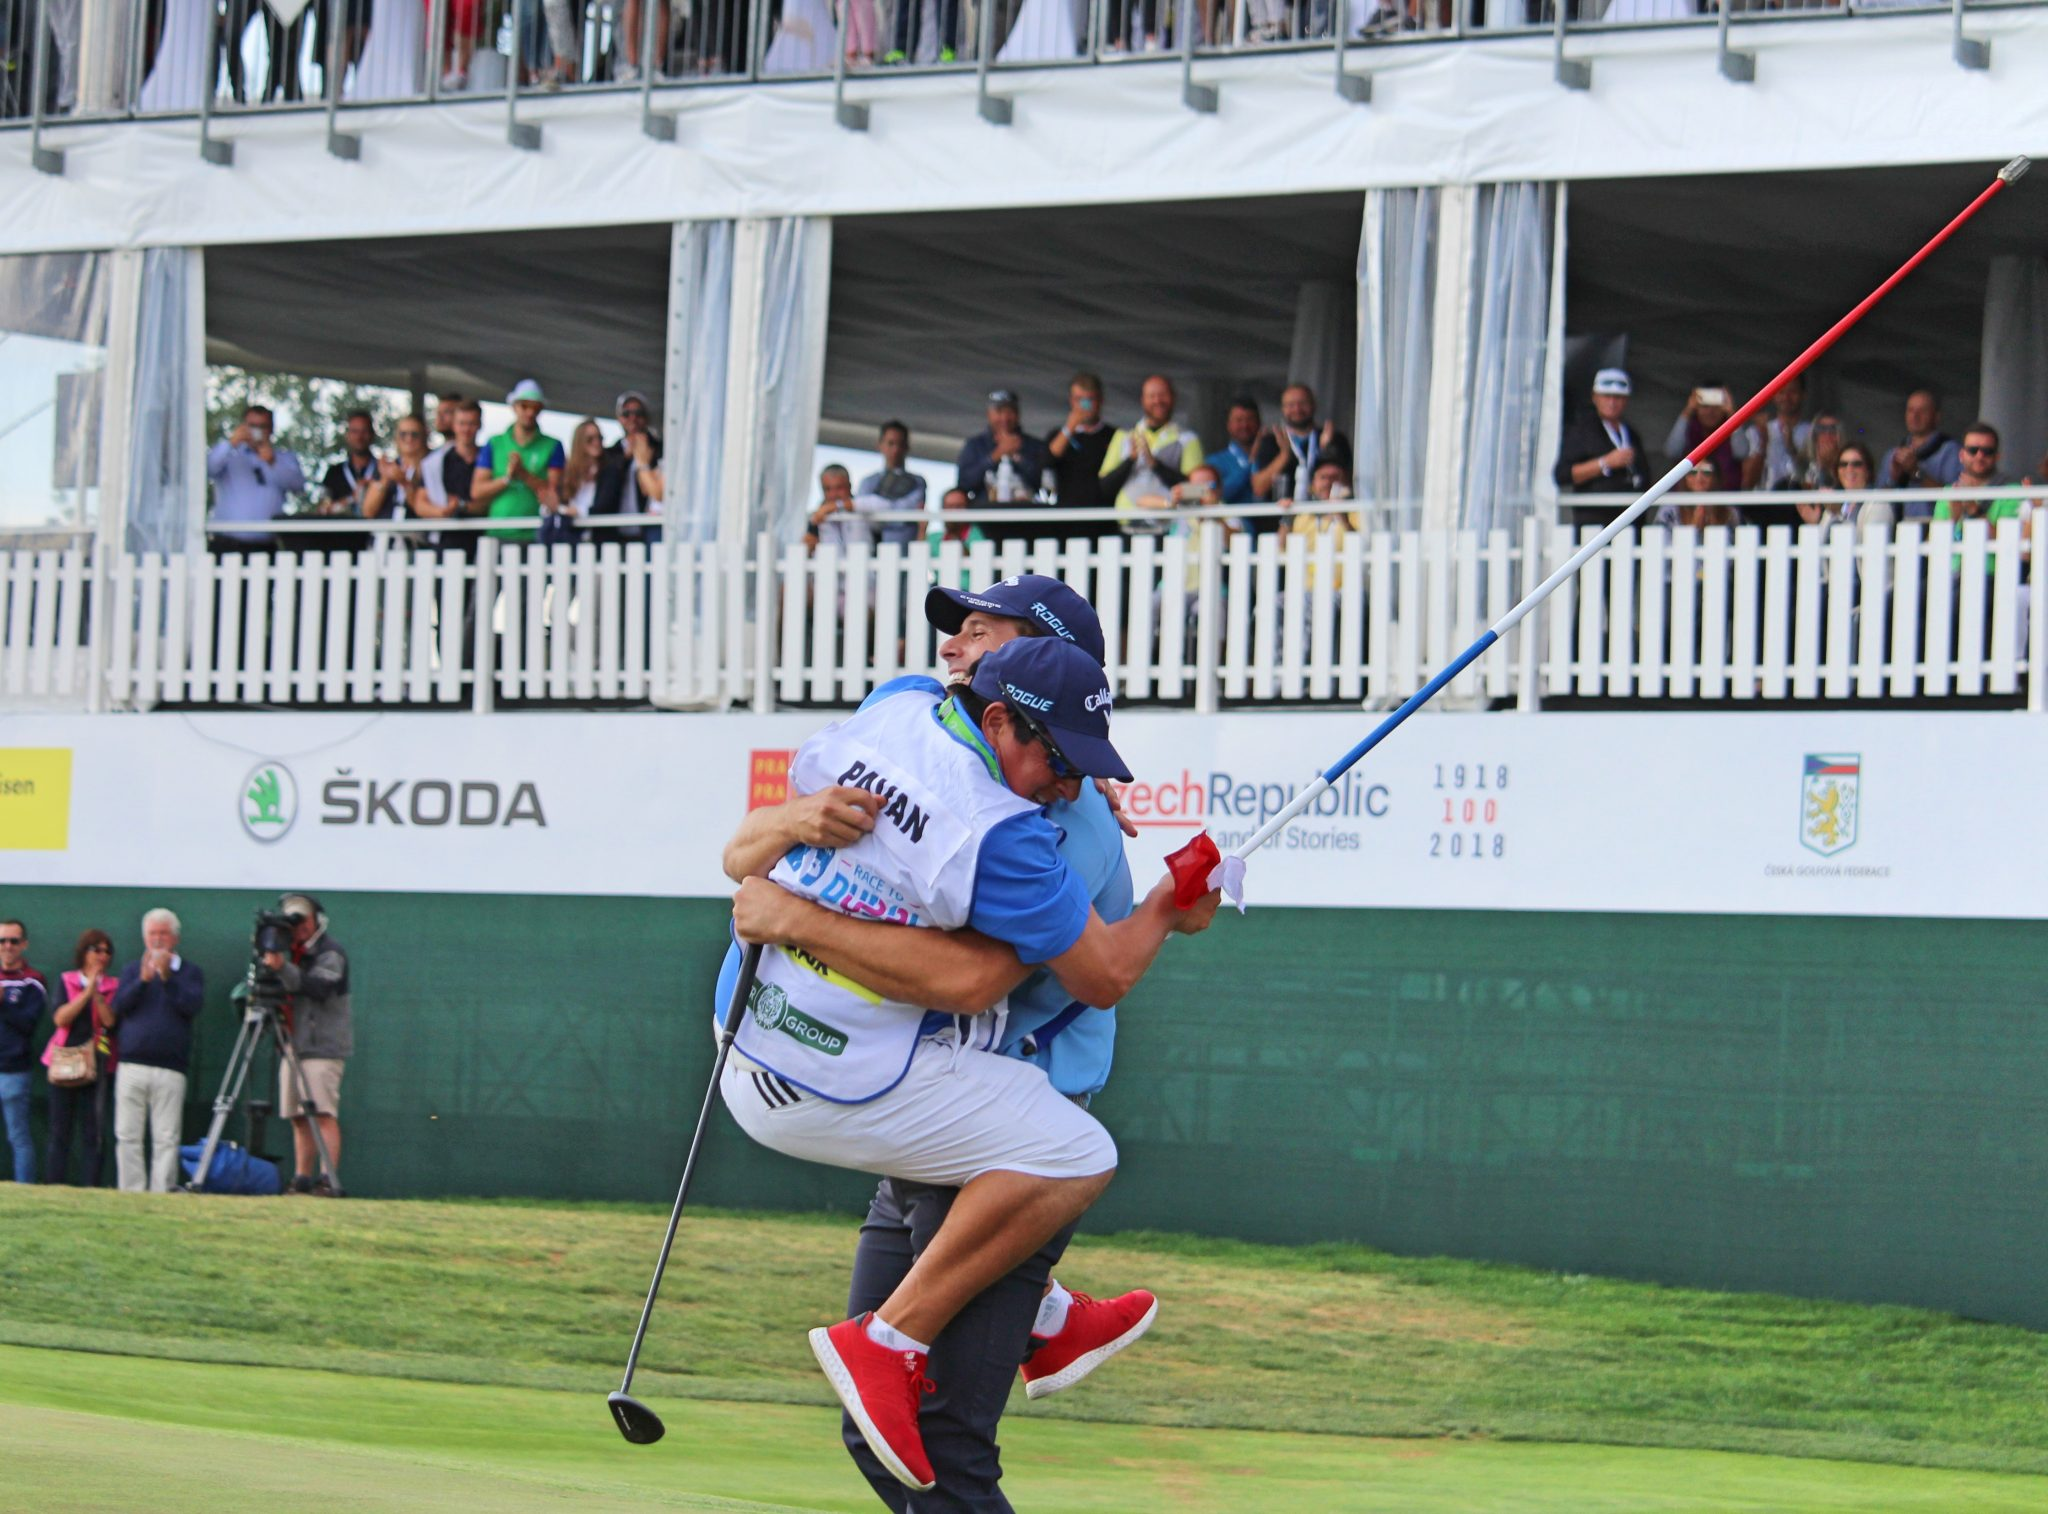 Andrea Pavan celebrates with his caddie